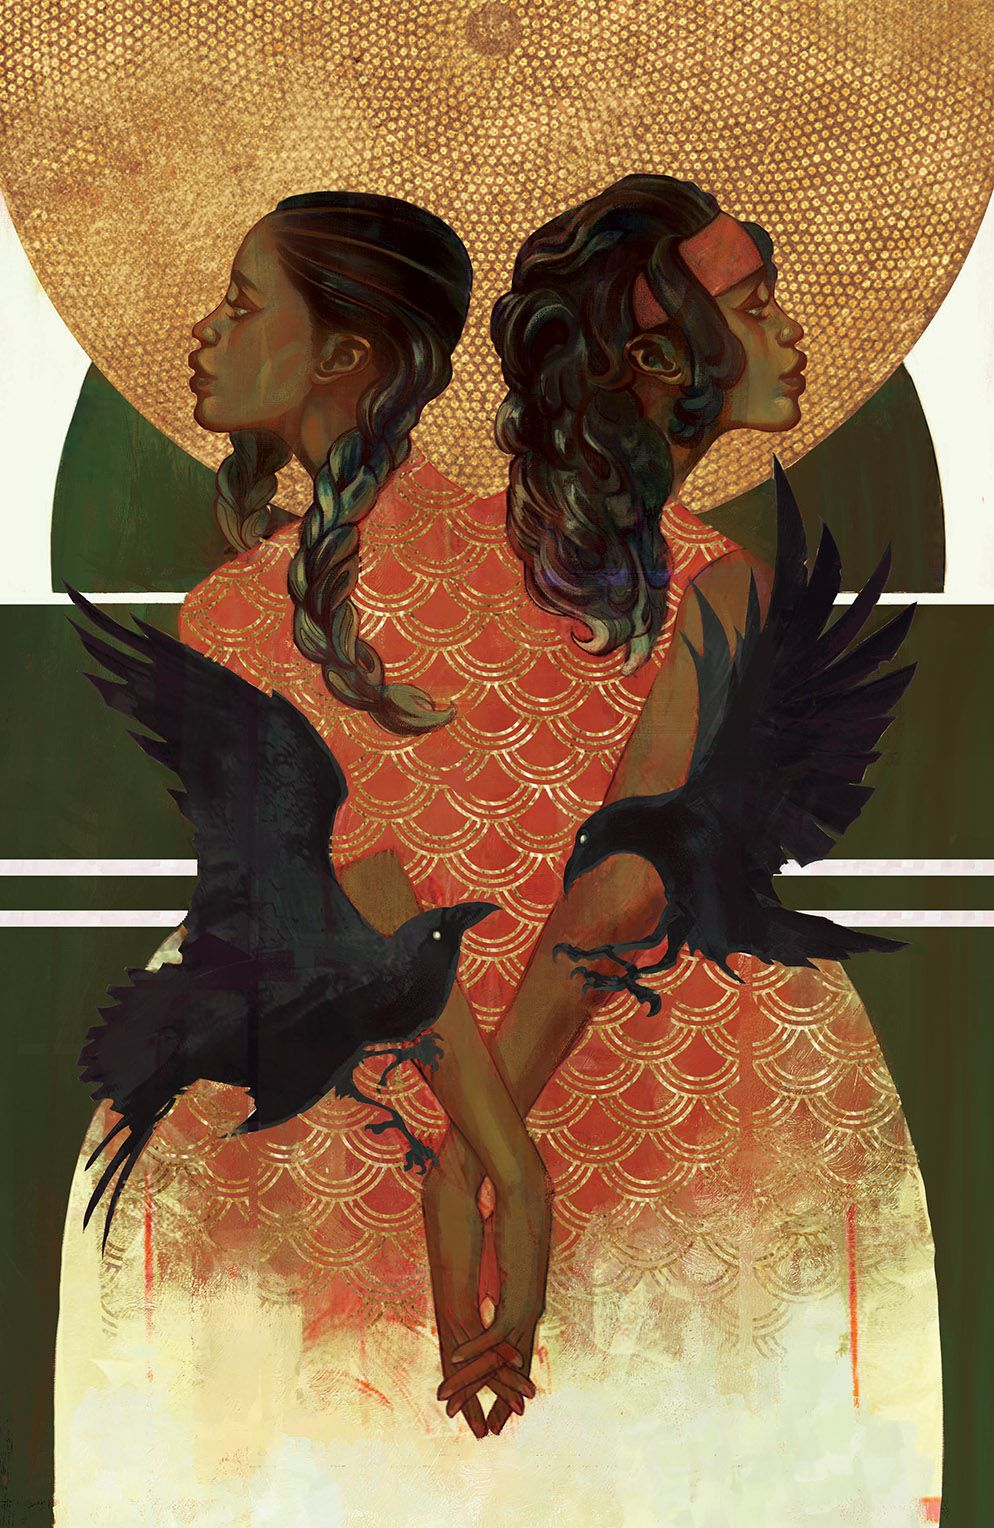 UnkindnessRavens_004_Cover_B_Raven ComicList Previews: AN UNKINDNESS OF RAVENS #4 (OF 4)